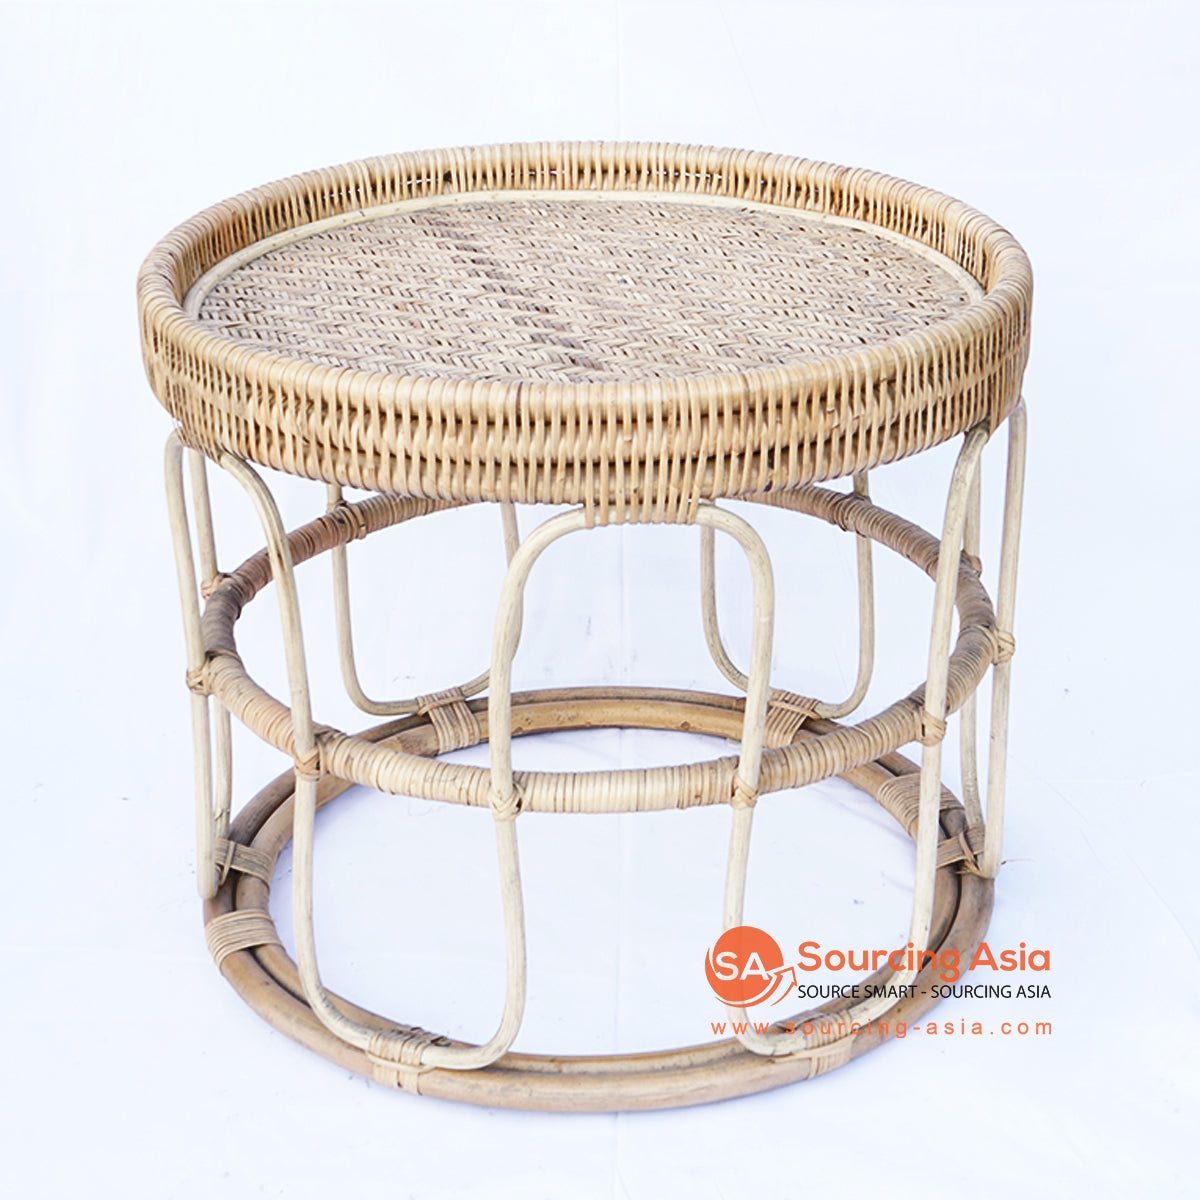 BNTC004-6 RATTAN SIDE TABLE TRAYS